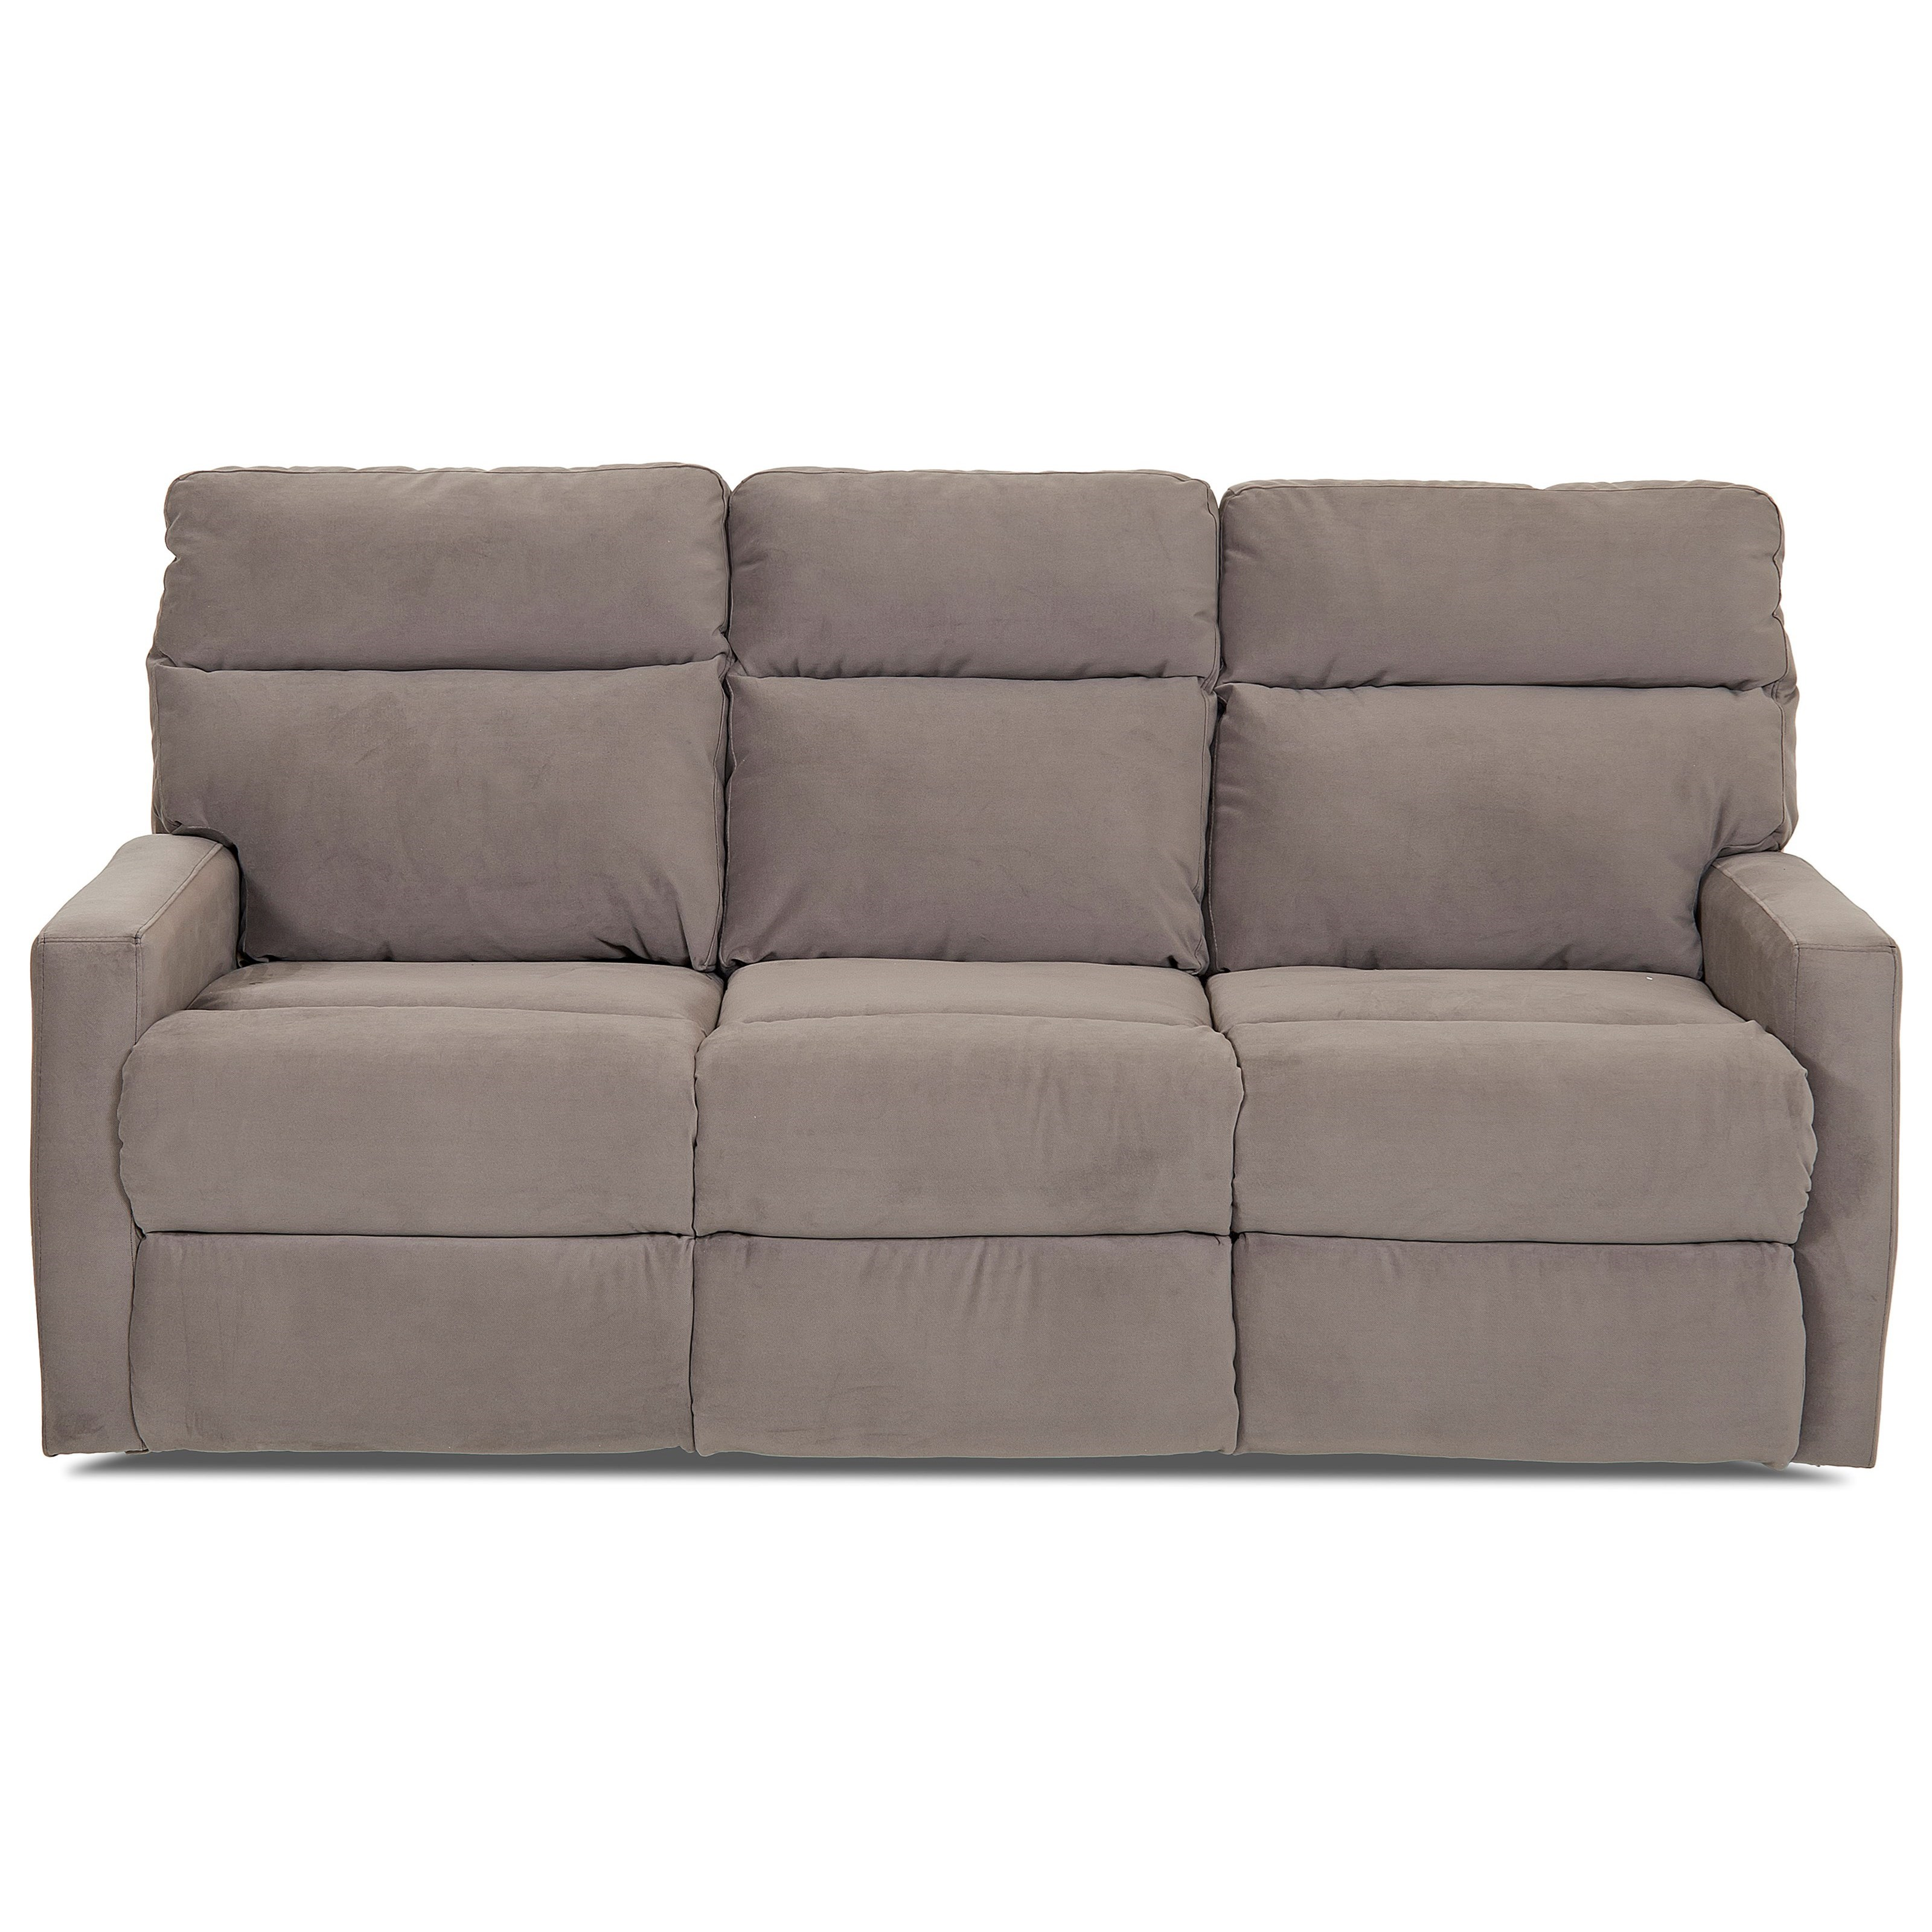 klaussner sofa and loveseat set serta upholstery elizabeth sleeper monticello reclining with soft track arms